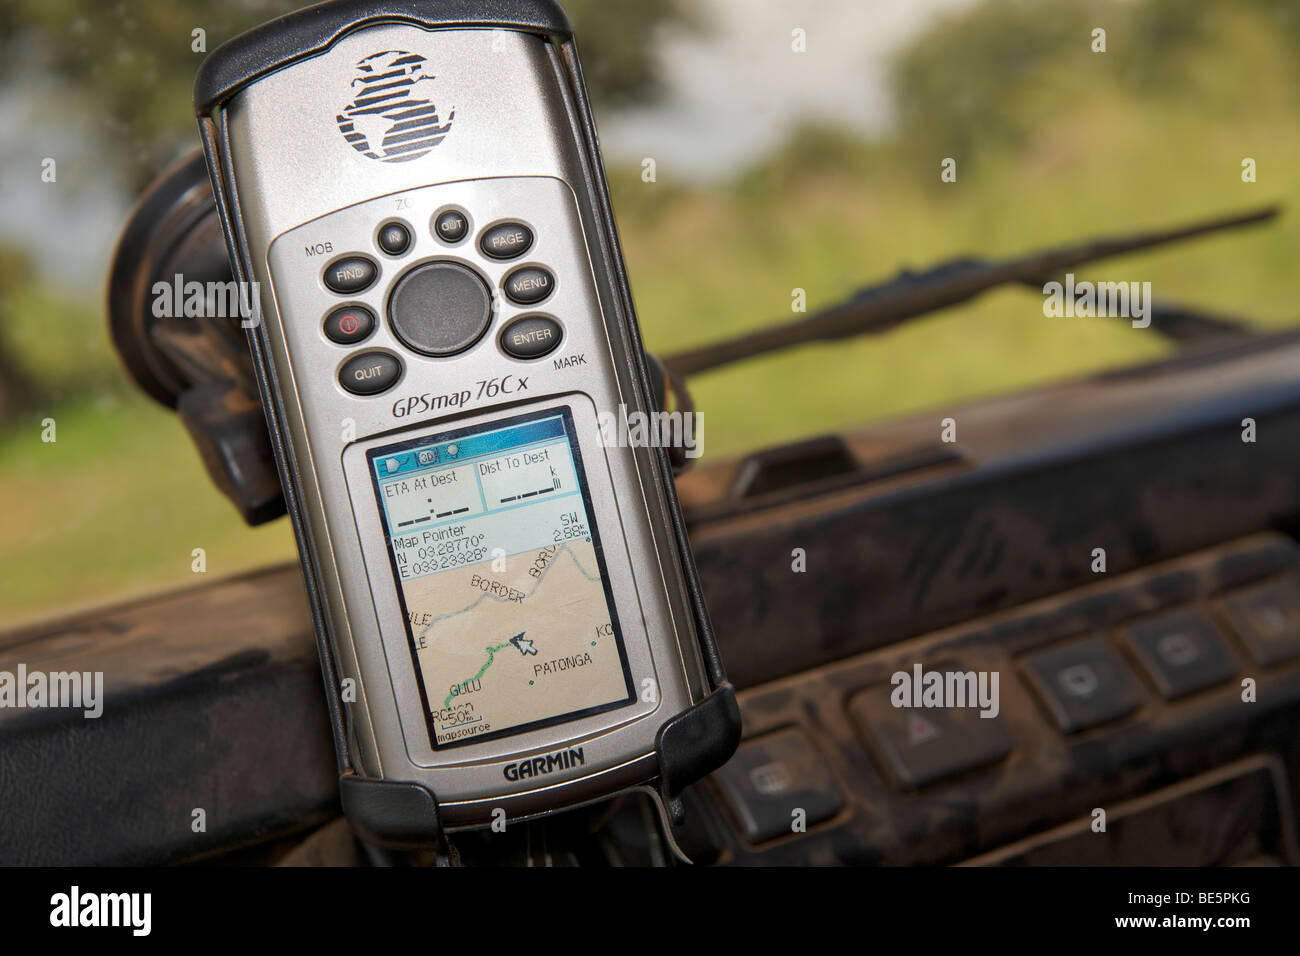 A GPS mounted on the windscreen of a Land Rover in Uganda. - Stock Image